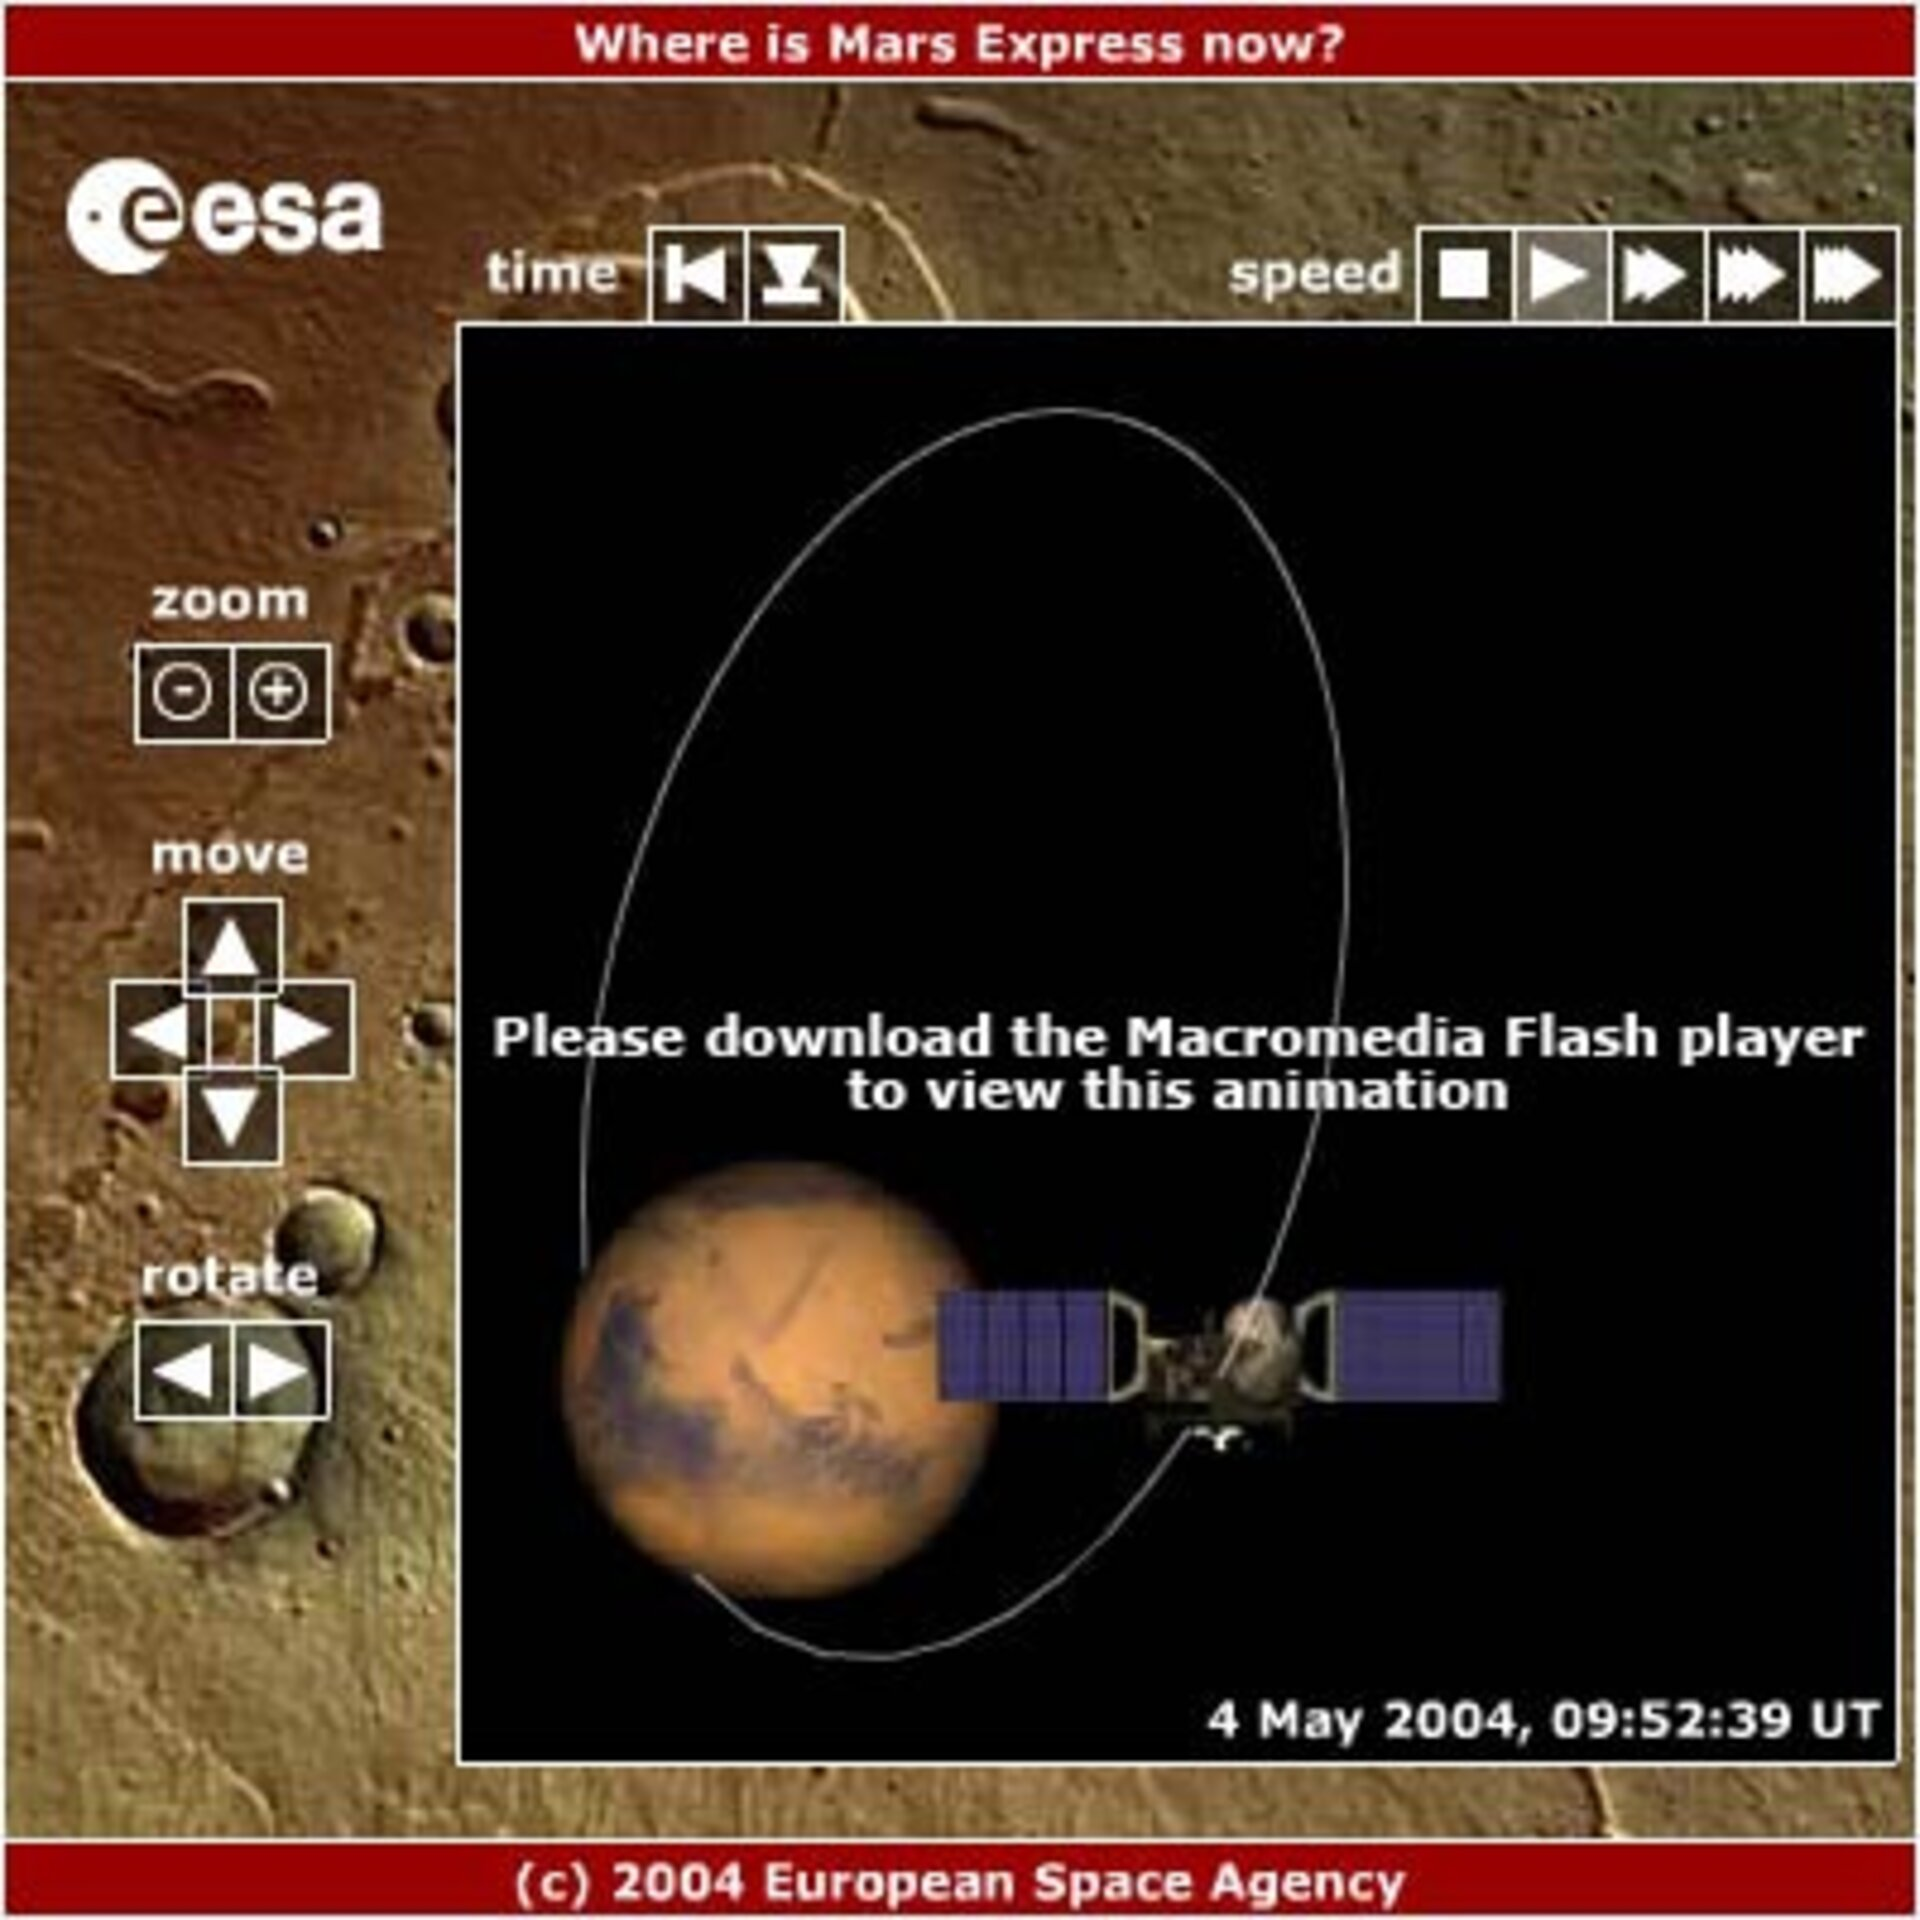 Mars Express orbiting Mars